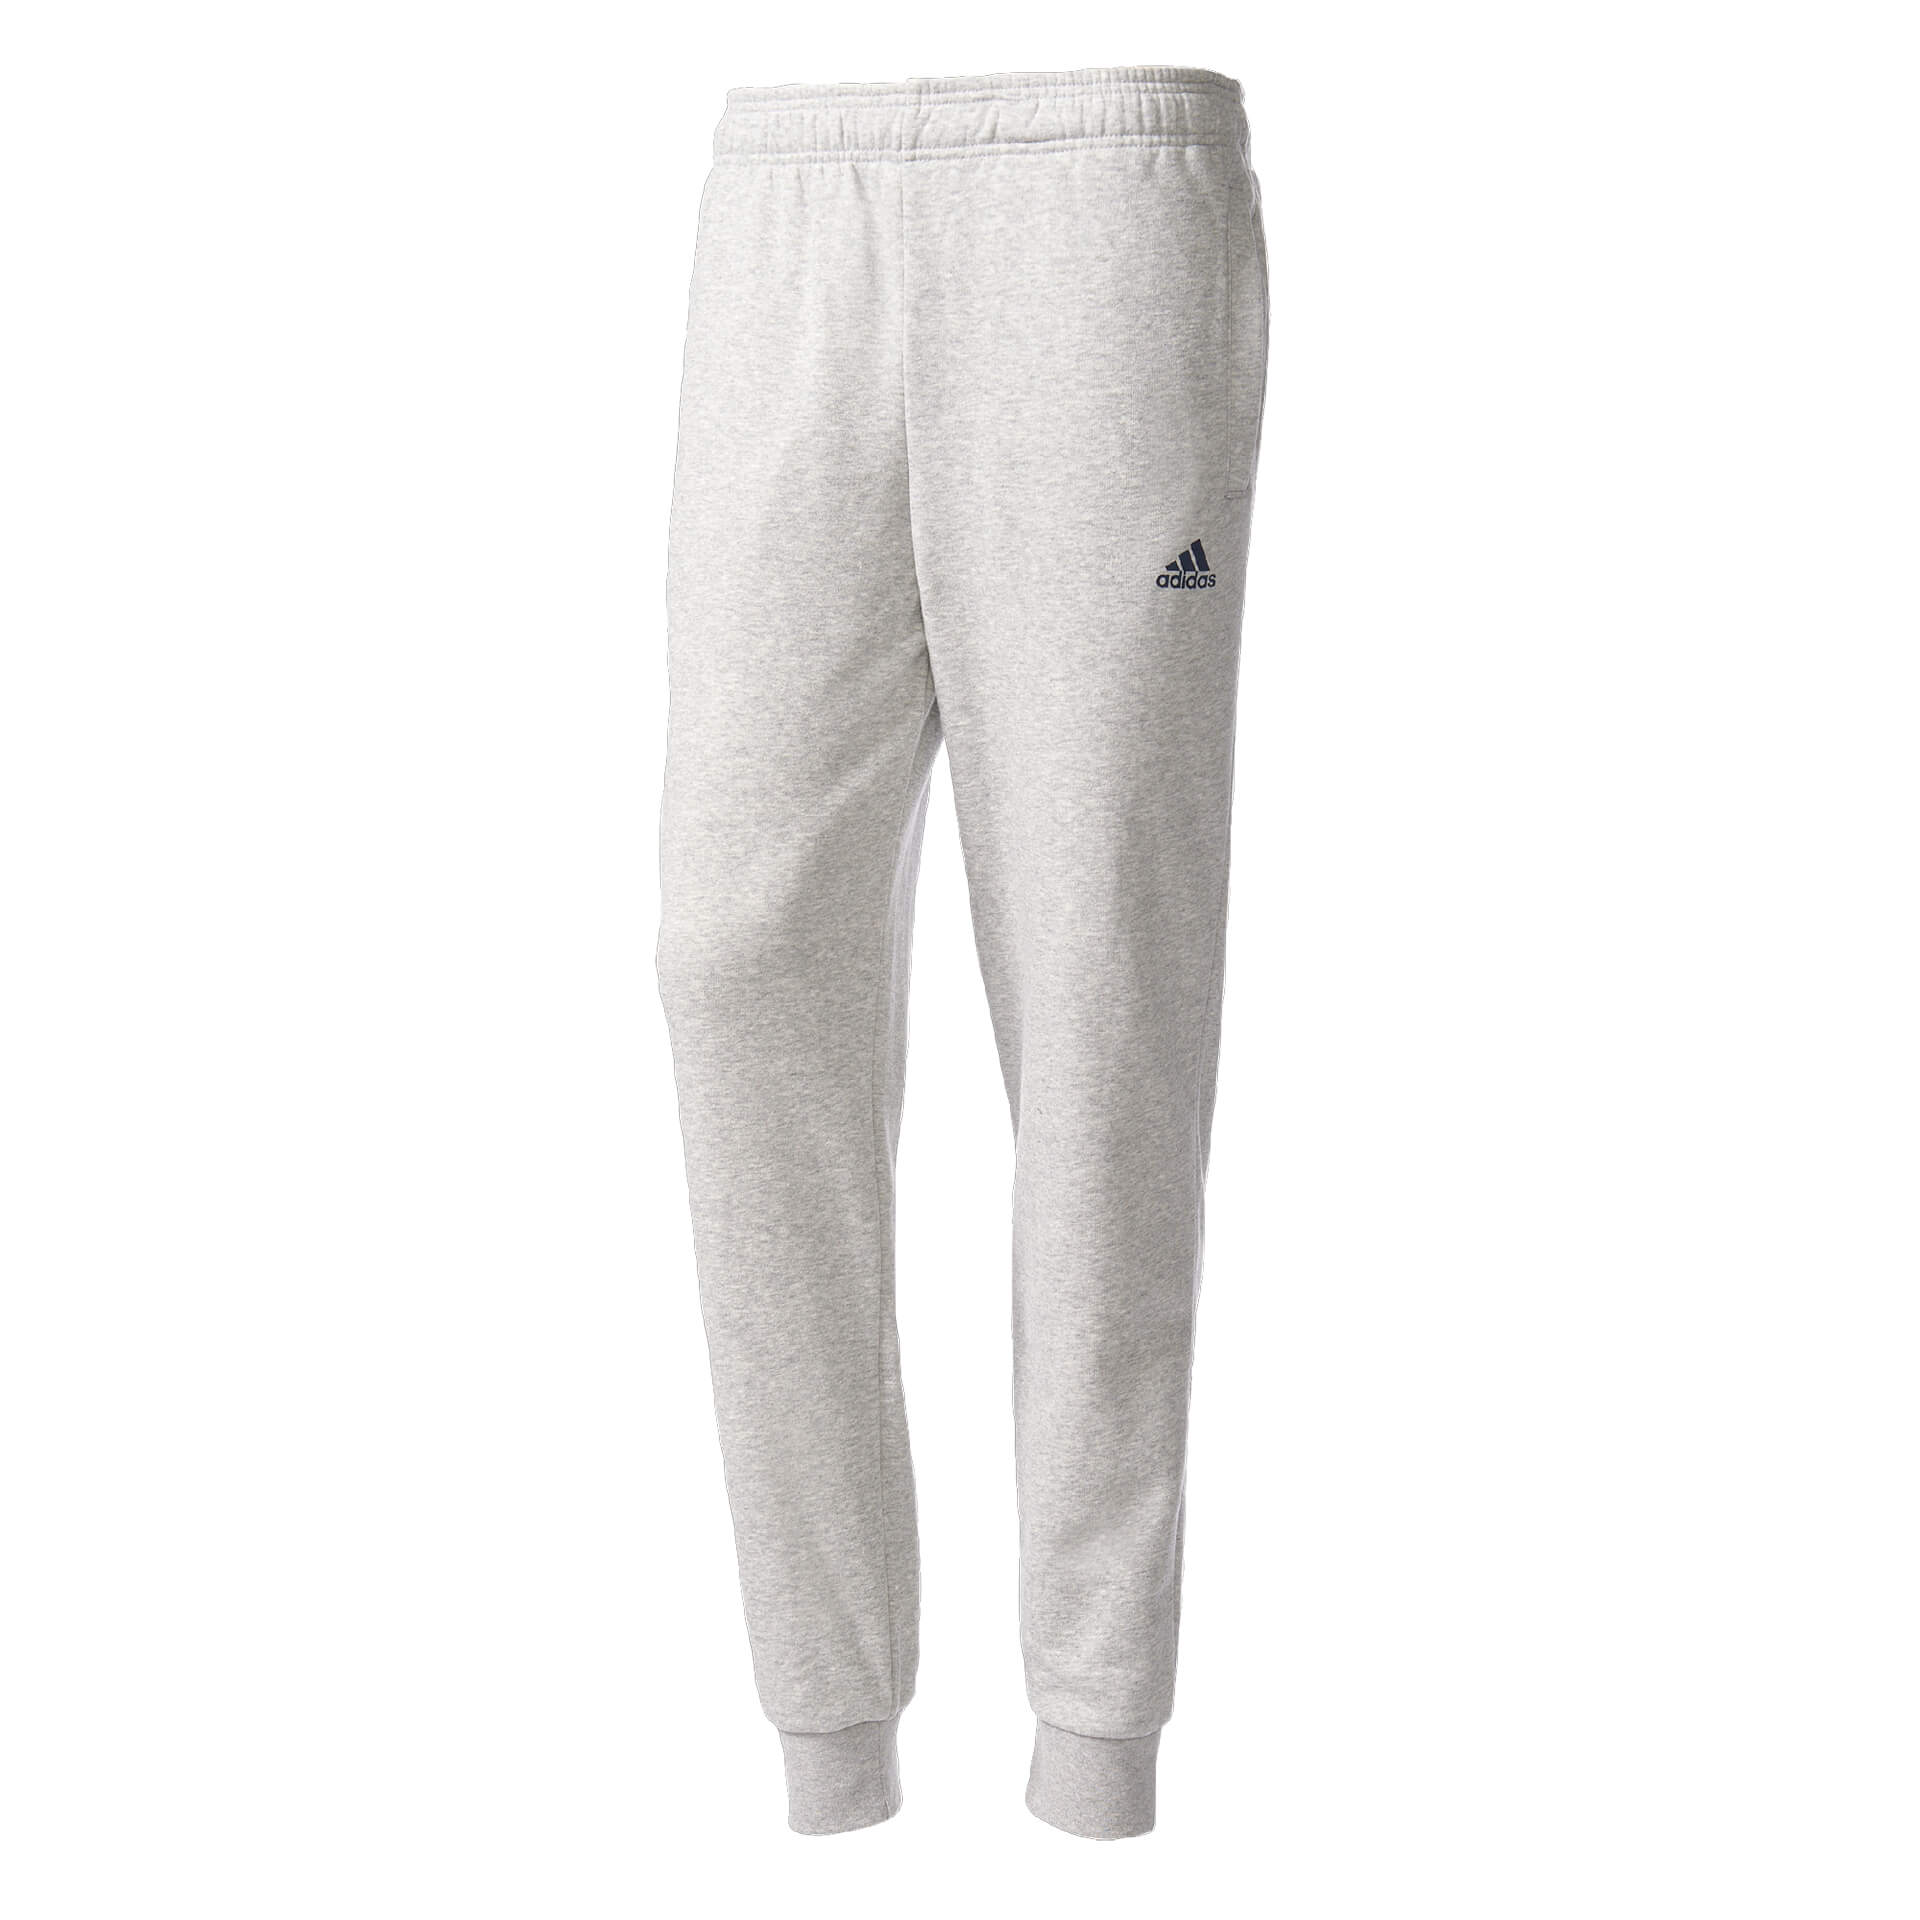 5f7ade0ed9 adidas-Essentials-Tapered-French-Terry-Pant-2109147-00-110853.jpg